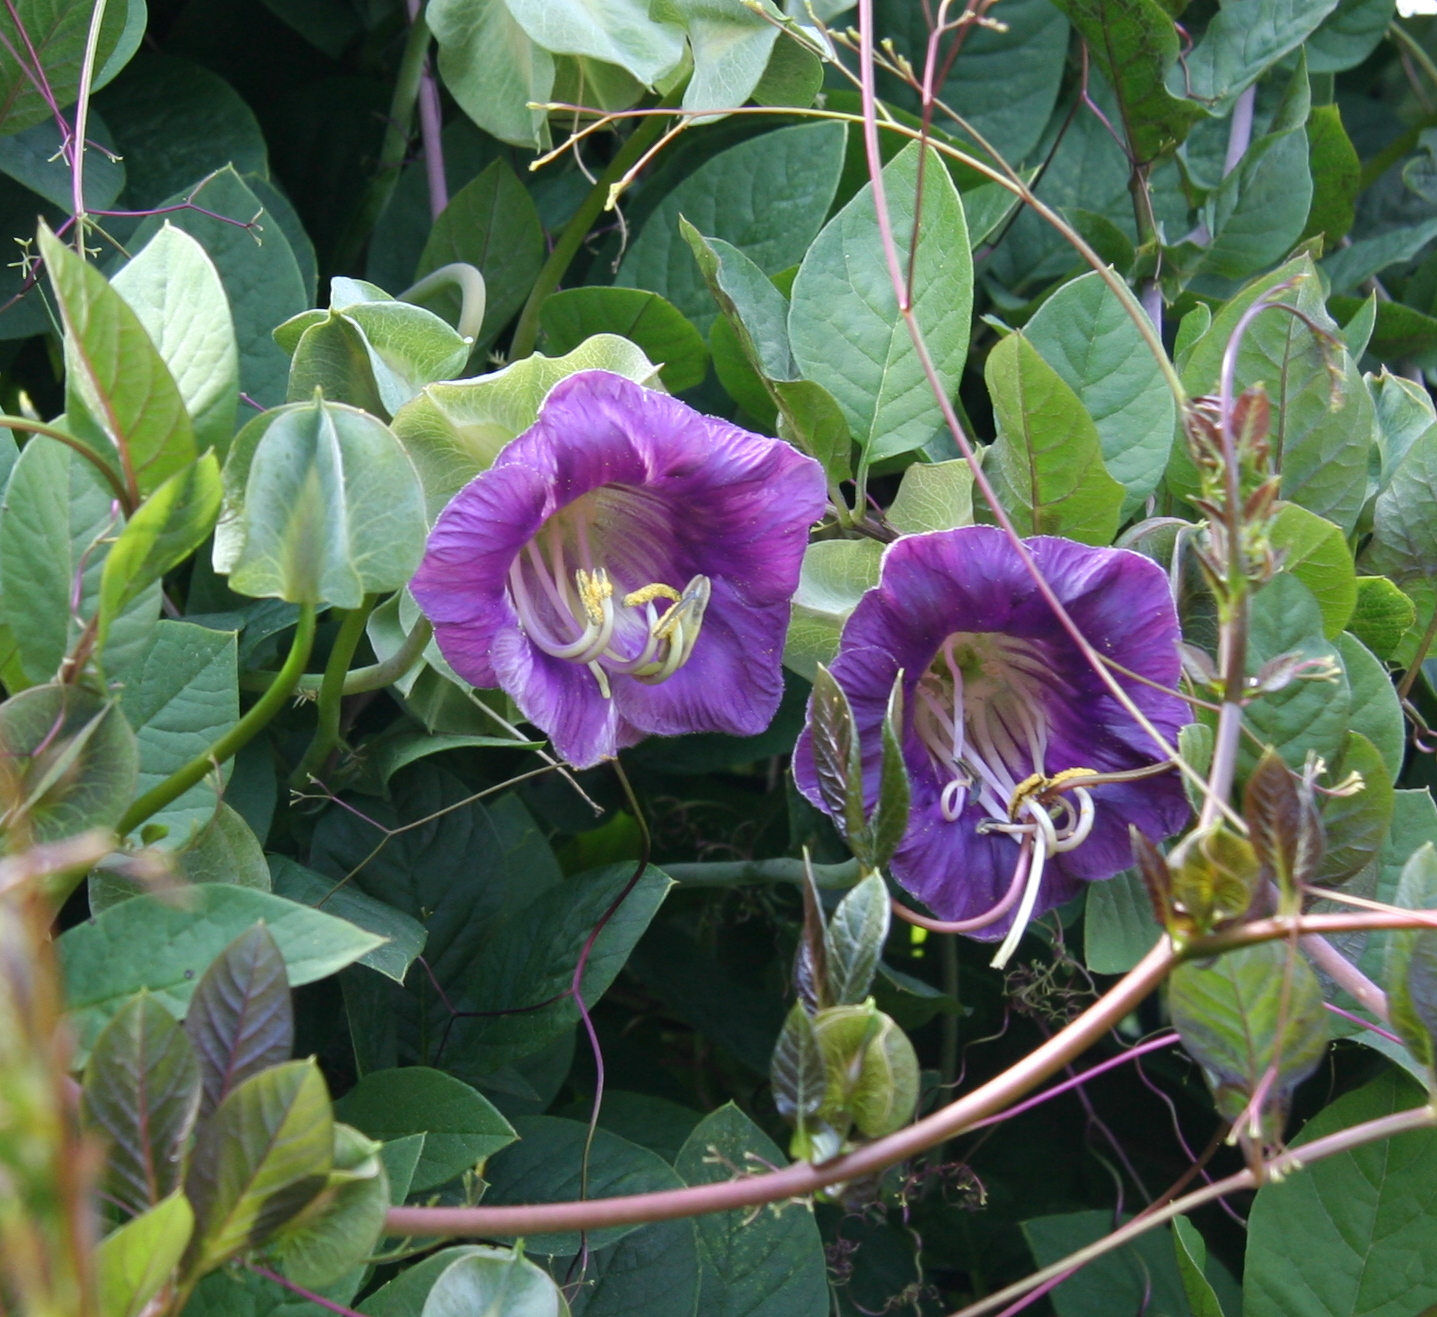 File:Cobaea scandens 05.jpg - Wikimedia Commons